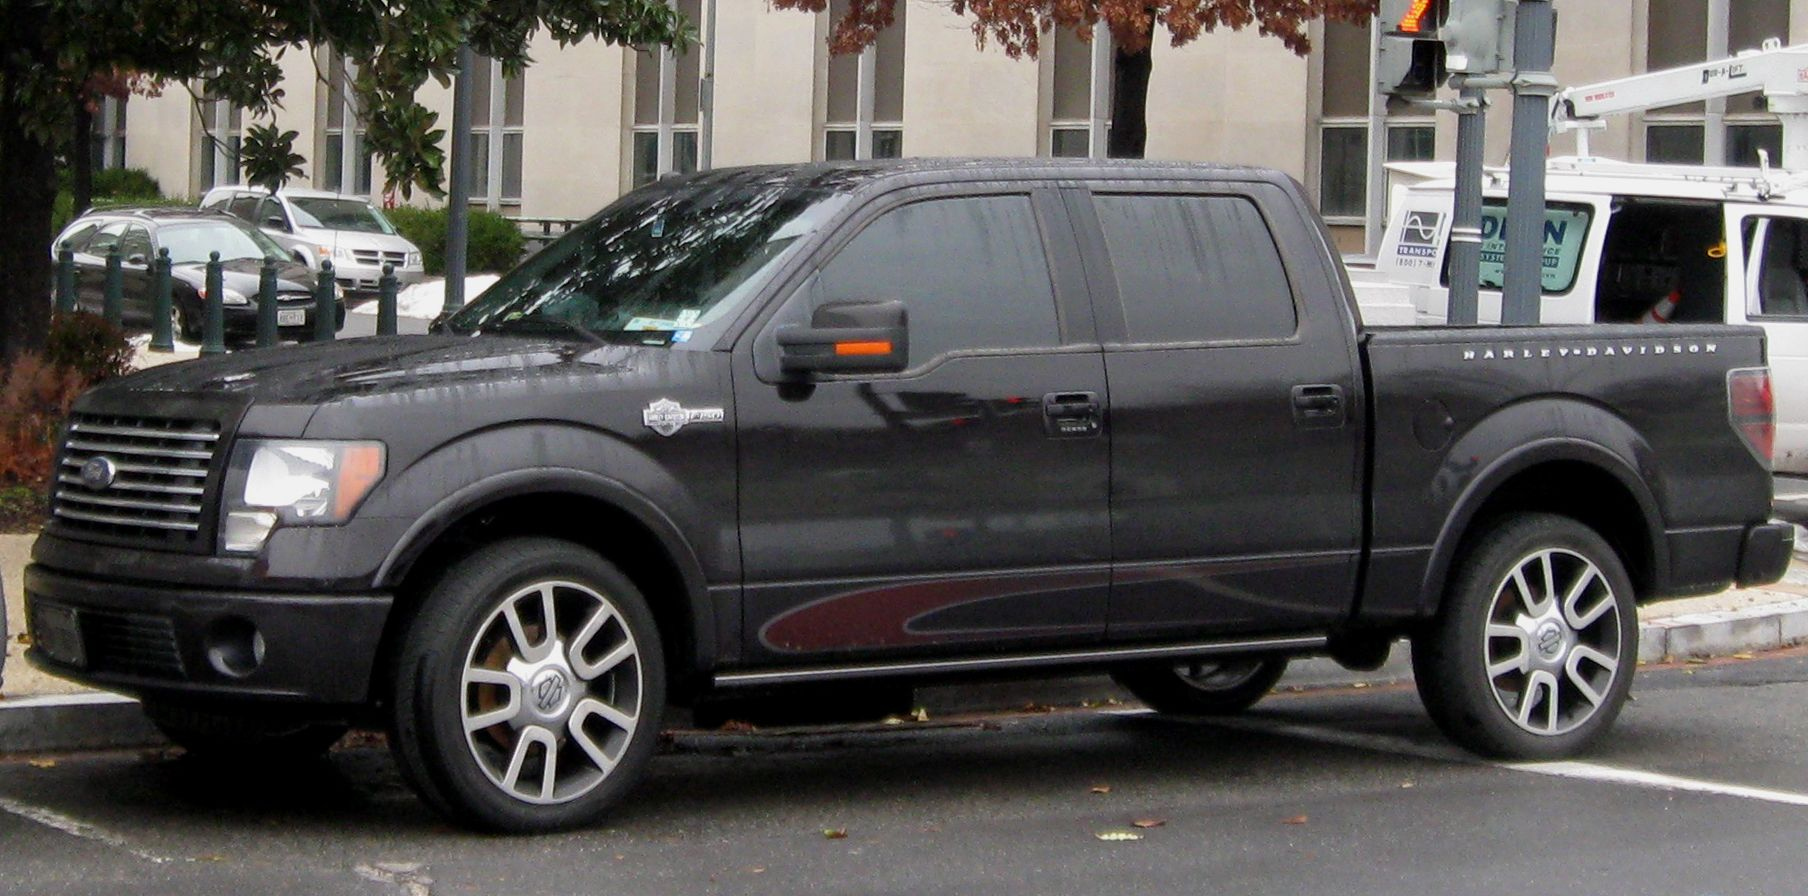 hight resolution of 2010 ford f 150 harley davidson ford 2010 f 150 owners manual pdf download 2010 ford 150 parts accessories amazon for 2010 the f 150 is reworked to be